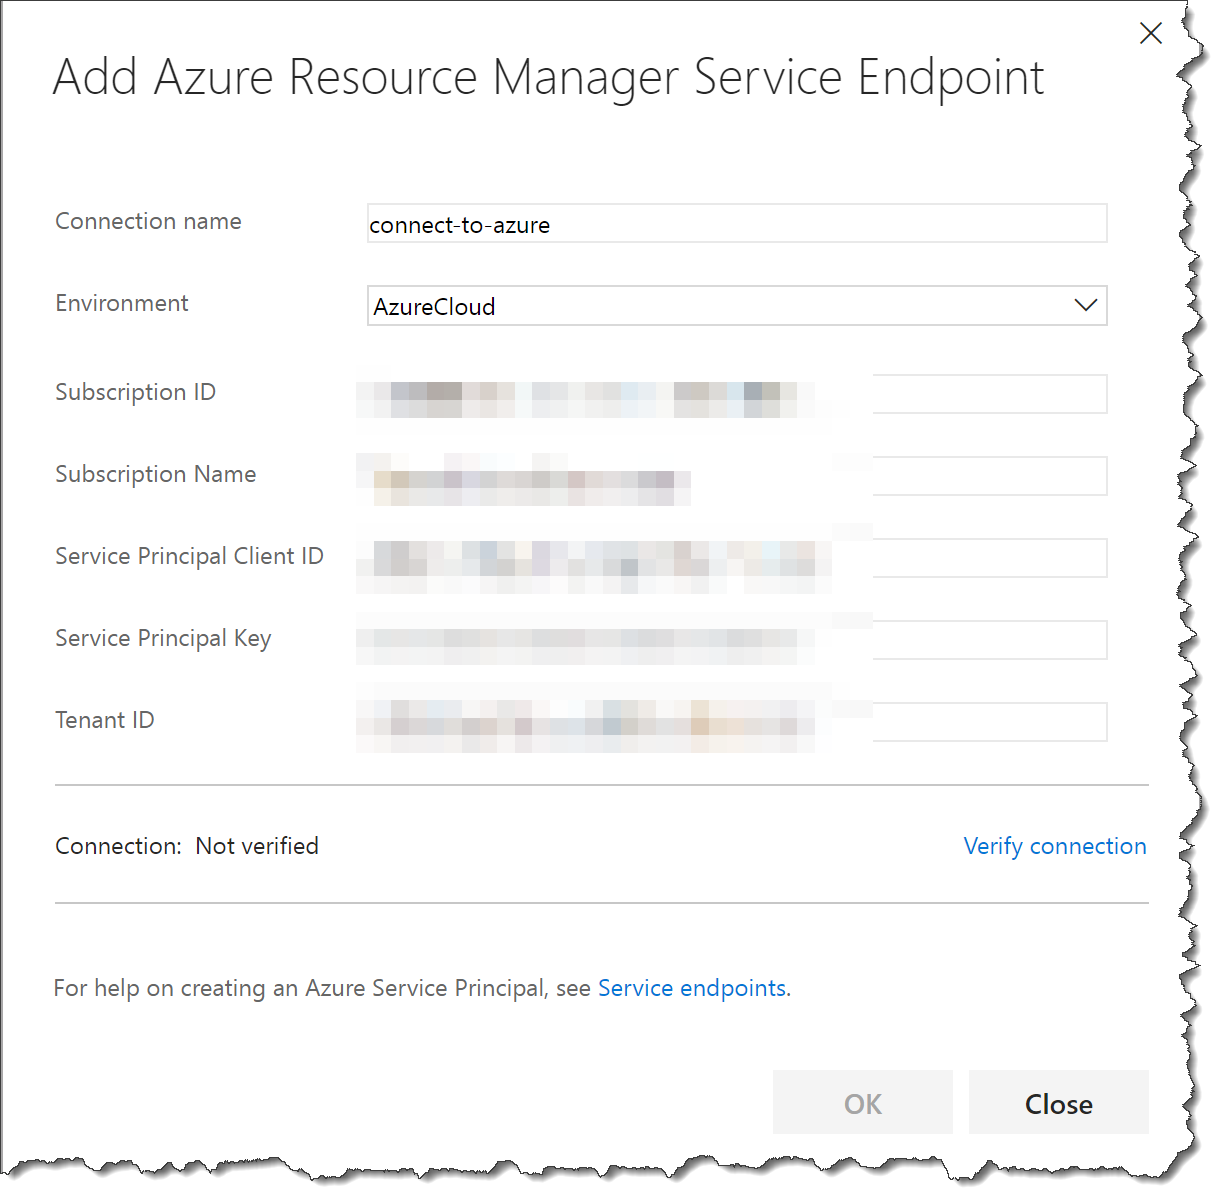 Deploy to Azure from TFS using an Azure Resource Manager